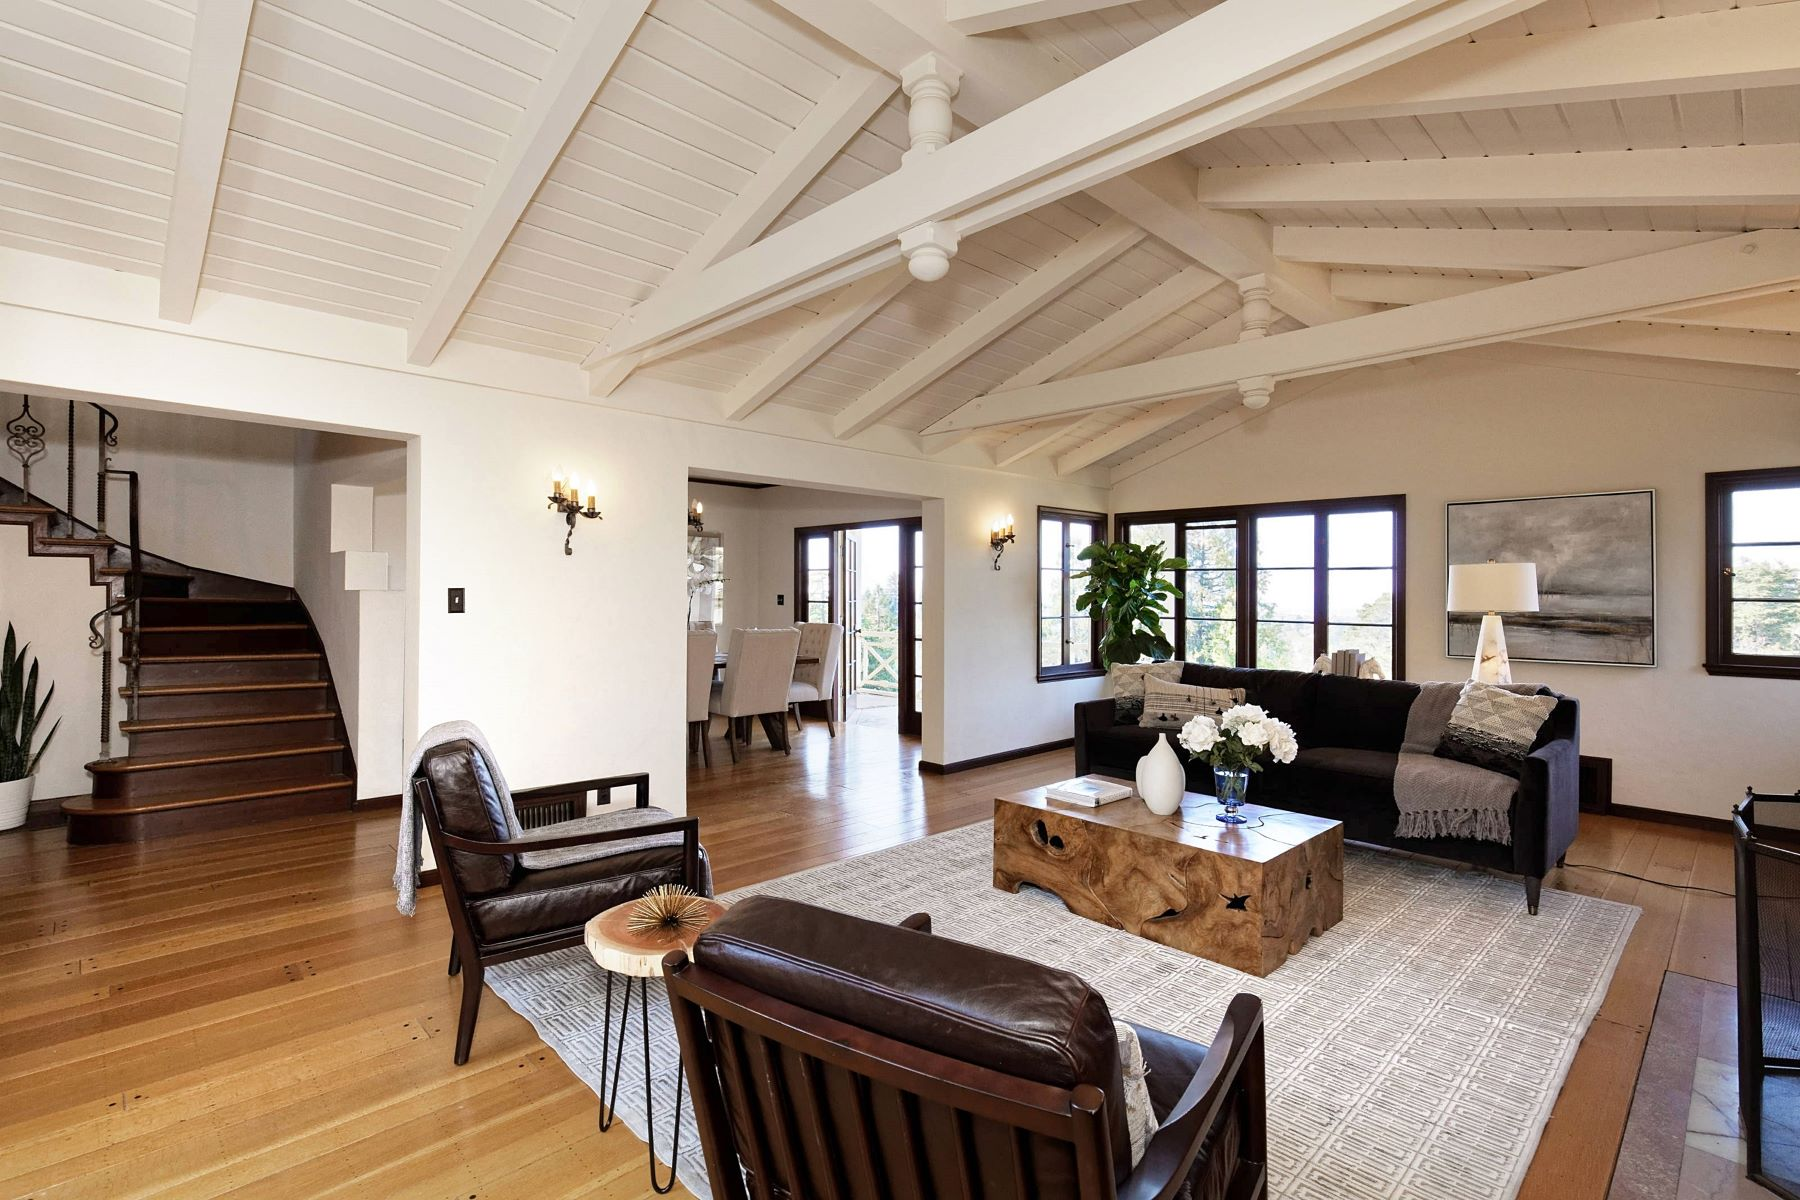 Single Family Homes for Sale at Enchanting Modern Spanish Home 34 Sonia Street Oakland, California 94618 United States